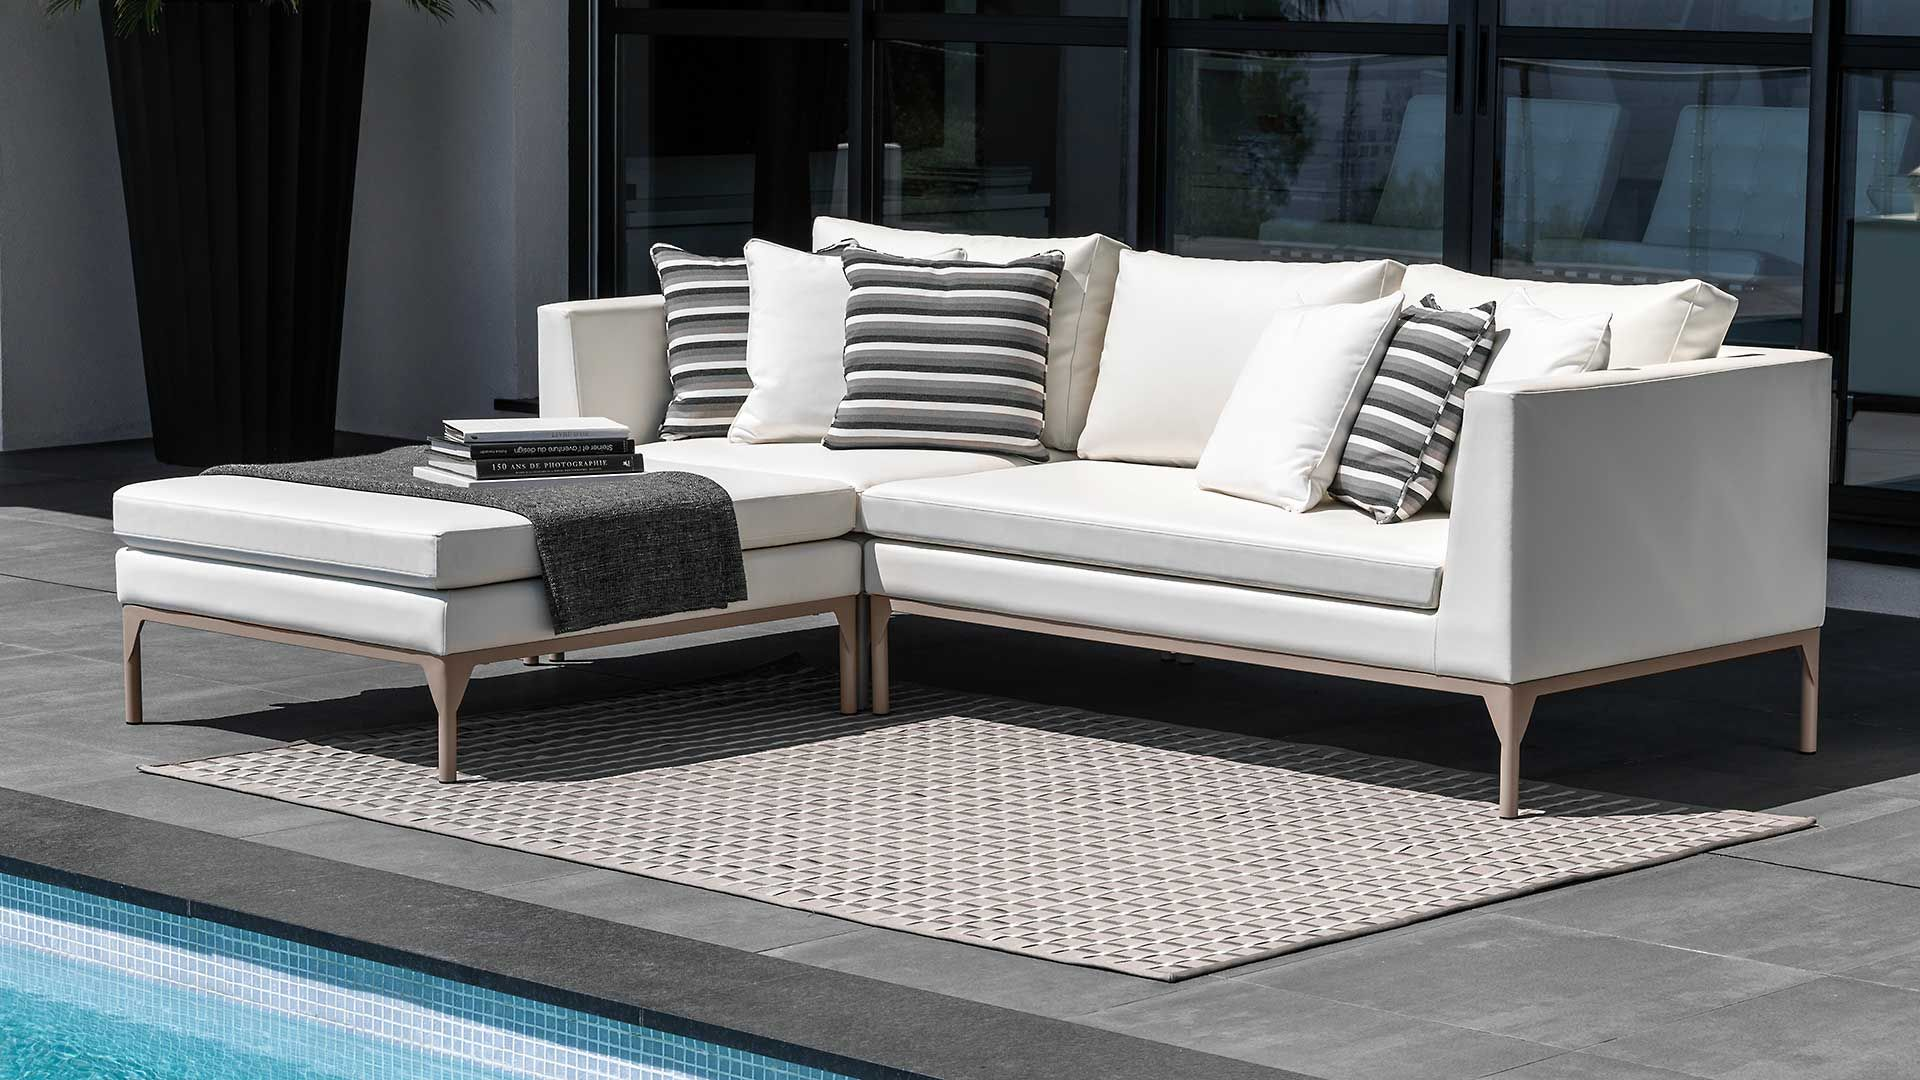 Talenti outdoor furniture from Italy Sofa armchairs chairs